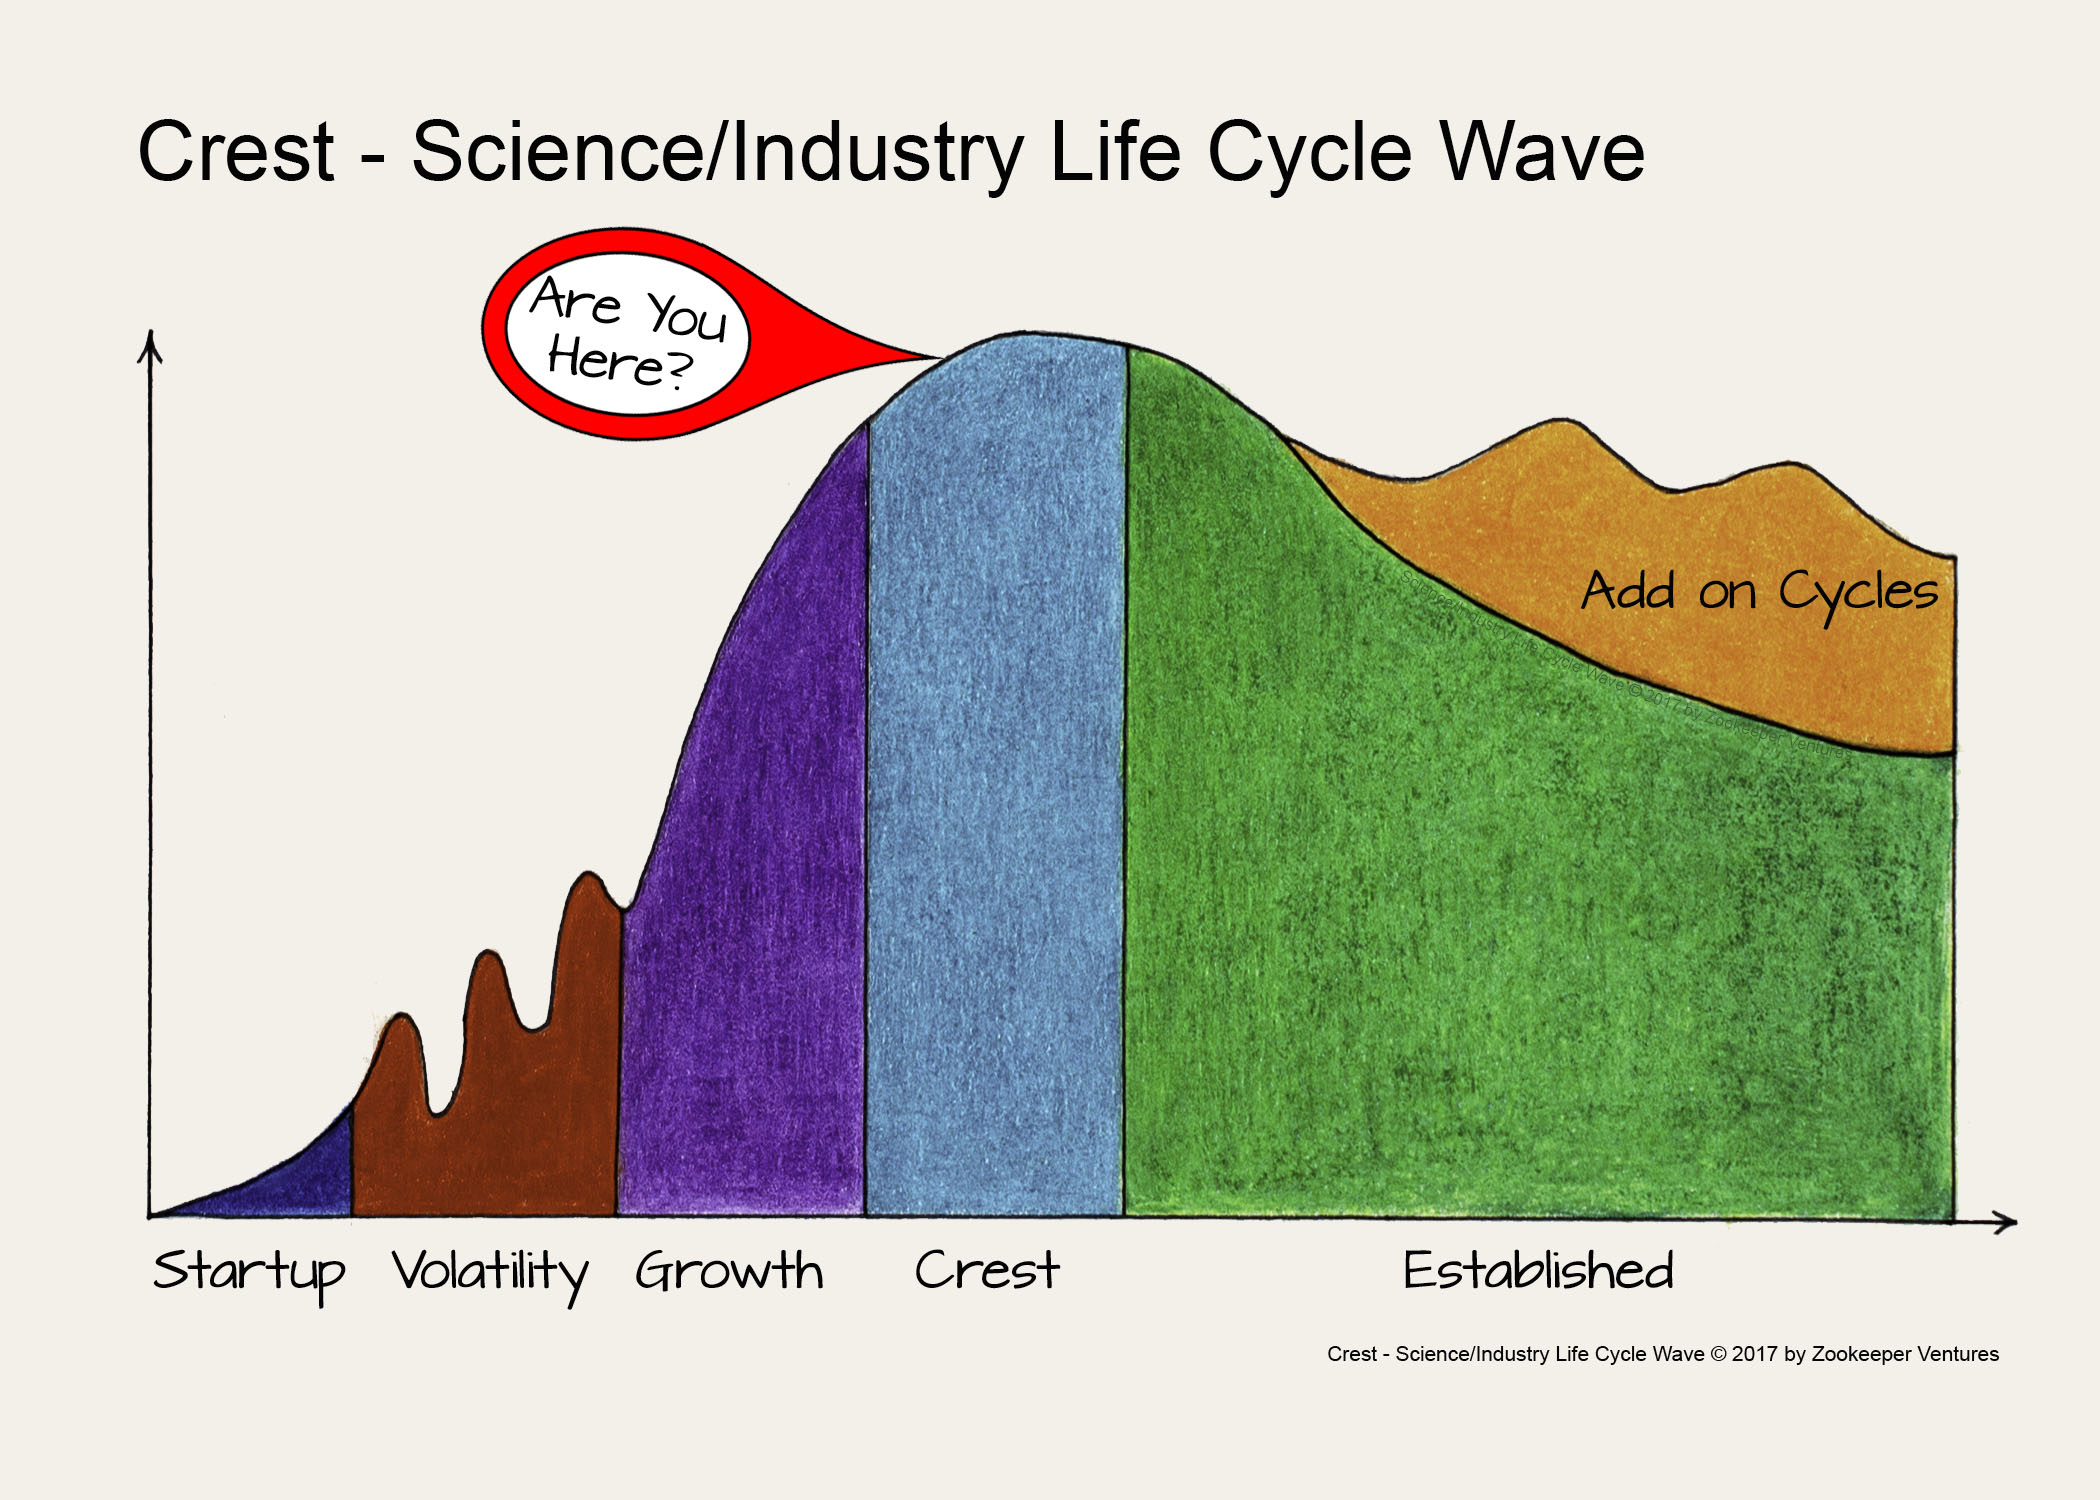 Crest - Science Industry Life Cycle Wave